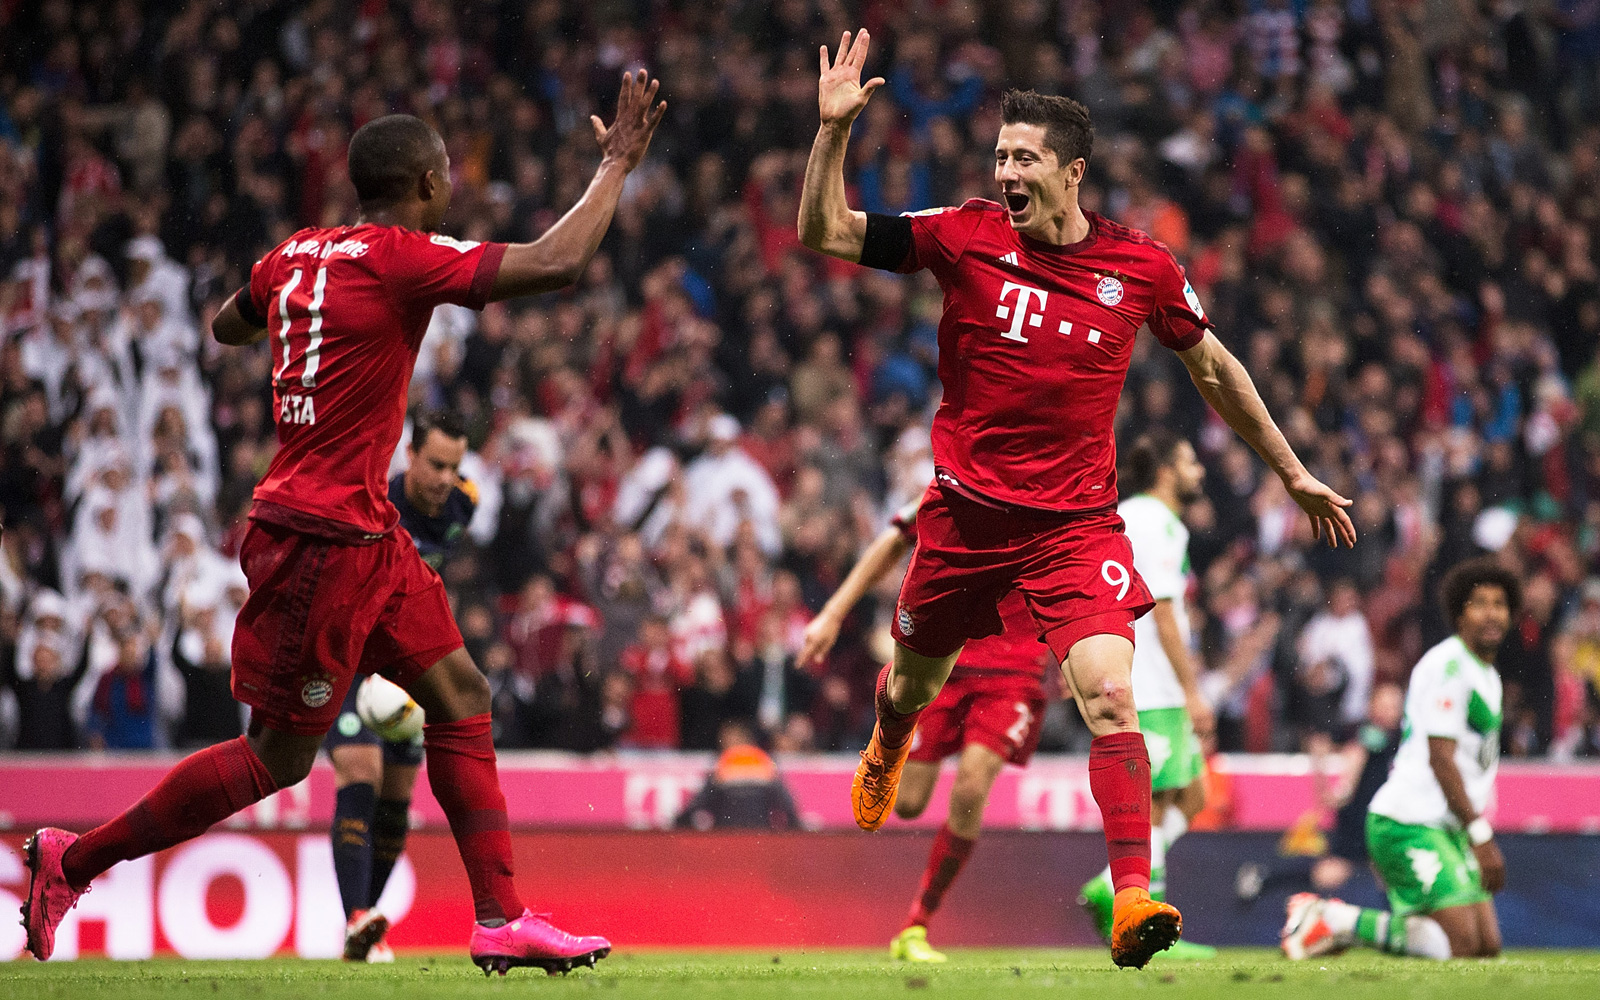 Robert Lewandowski holds up all five fingers–one for each goal he scored in a nine-minute span in a memorable 5-1 win over Bundesliga foe Wolfsburg.